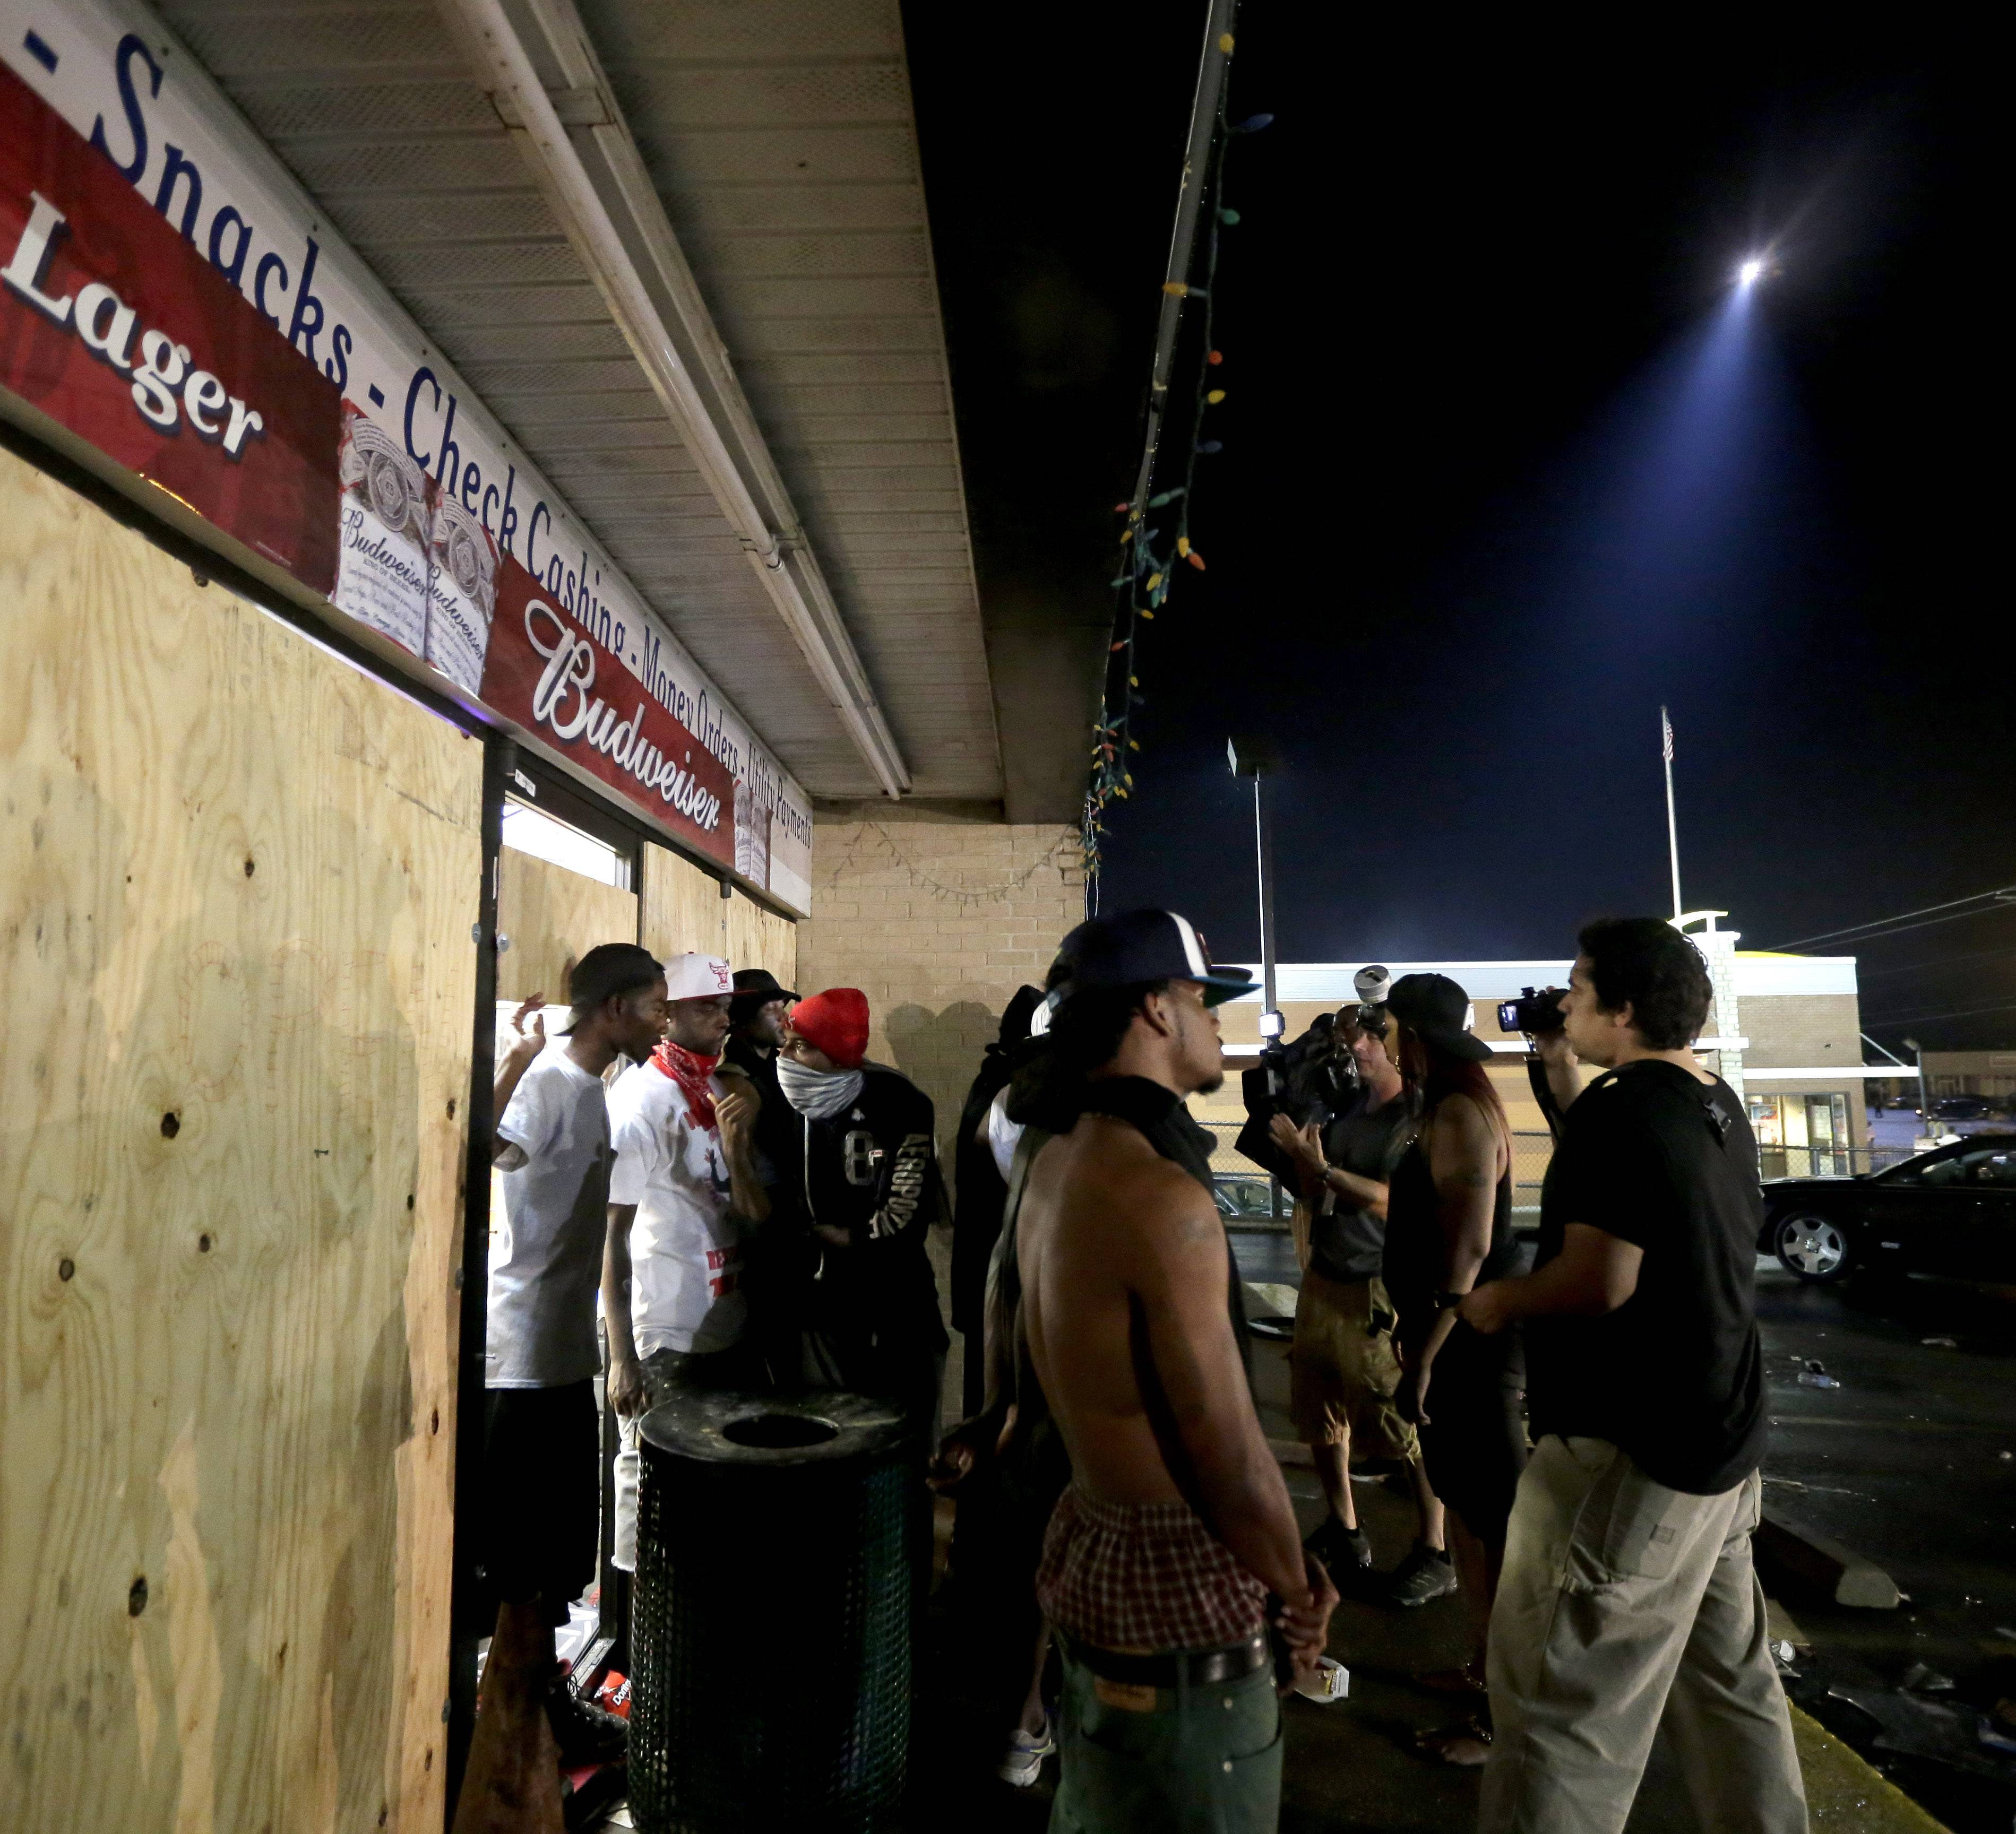 People stand in front of a convenience store after it was looted early Saturday, Aug. 16, in Ferguson, Mo. The violence stemmed from the shooting death of Michael Brown by police a week ago after the teen allegedly stole a box of cigars from the store.